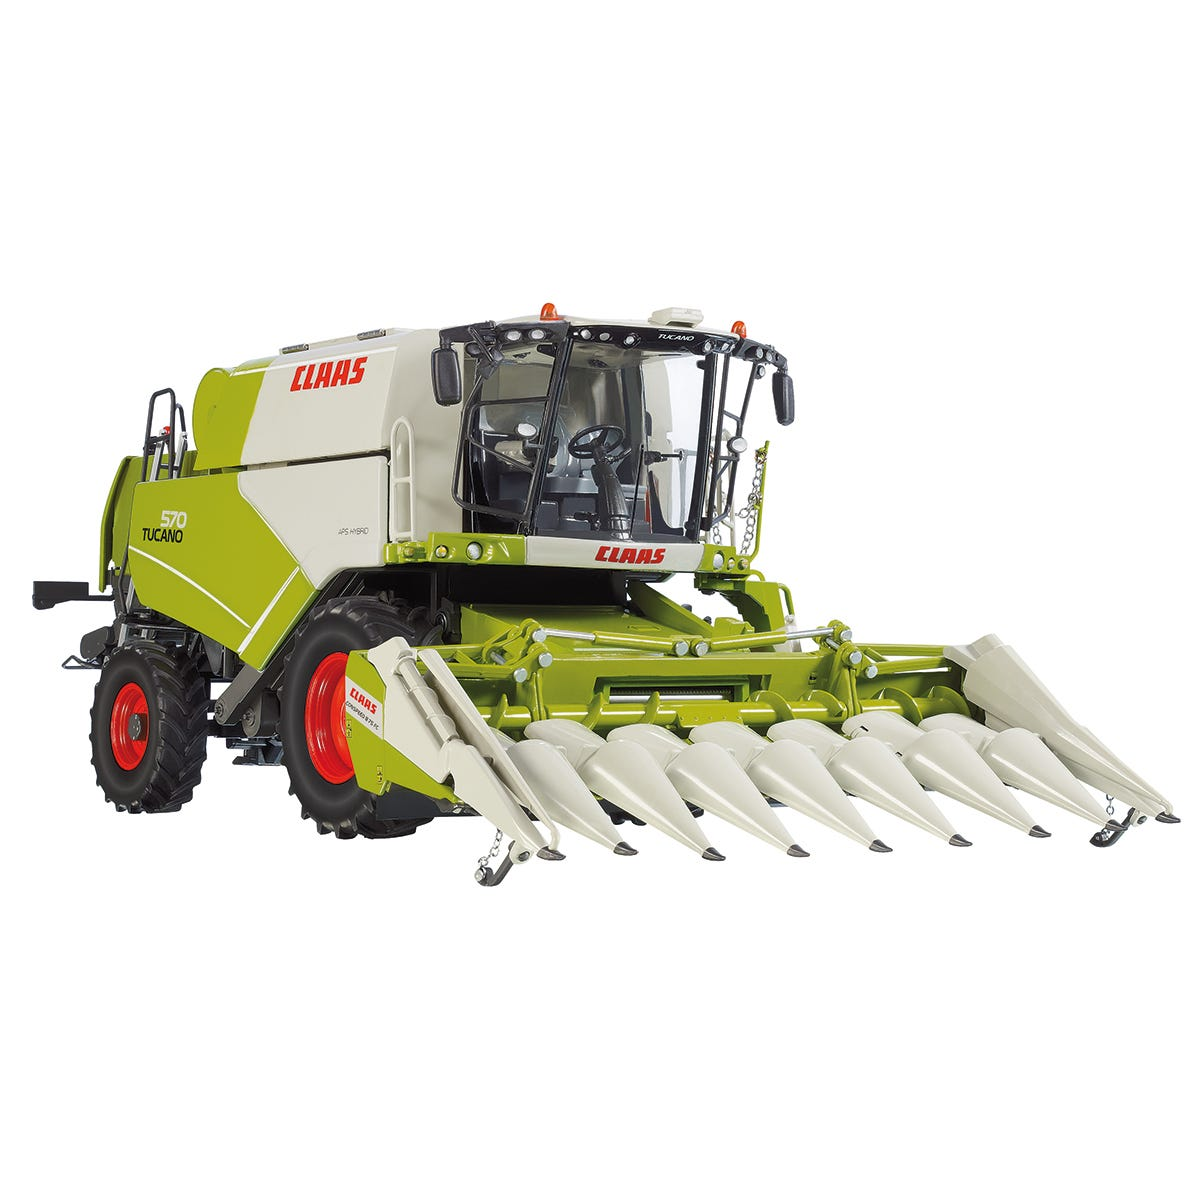 Claas Tucano Wiking 570 Conspeed 1:32